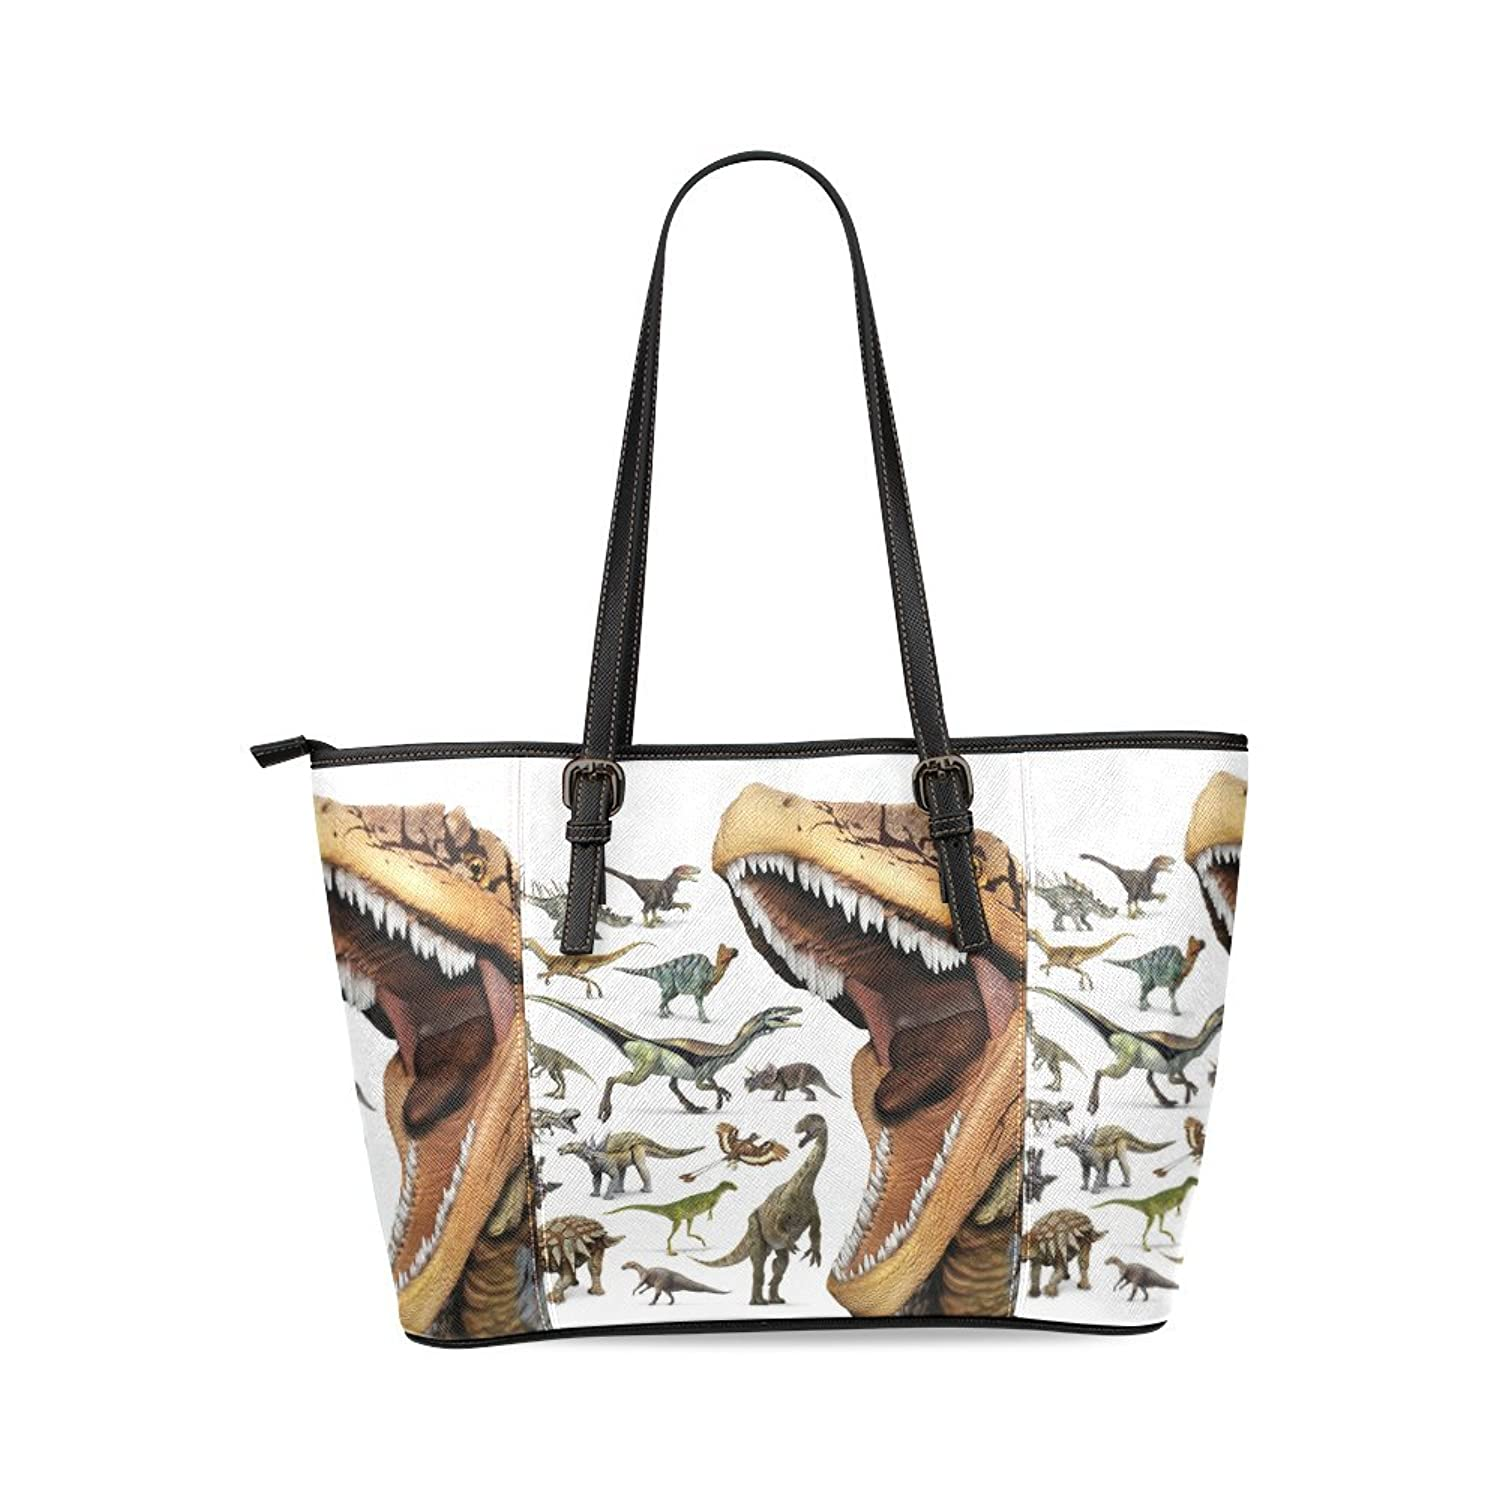 Dinosaur Custom PU Leather Large Tote Bag/Handbag/Shoulder Bag for Fashion Women /Girls